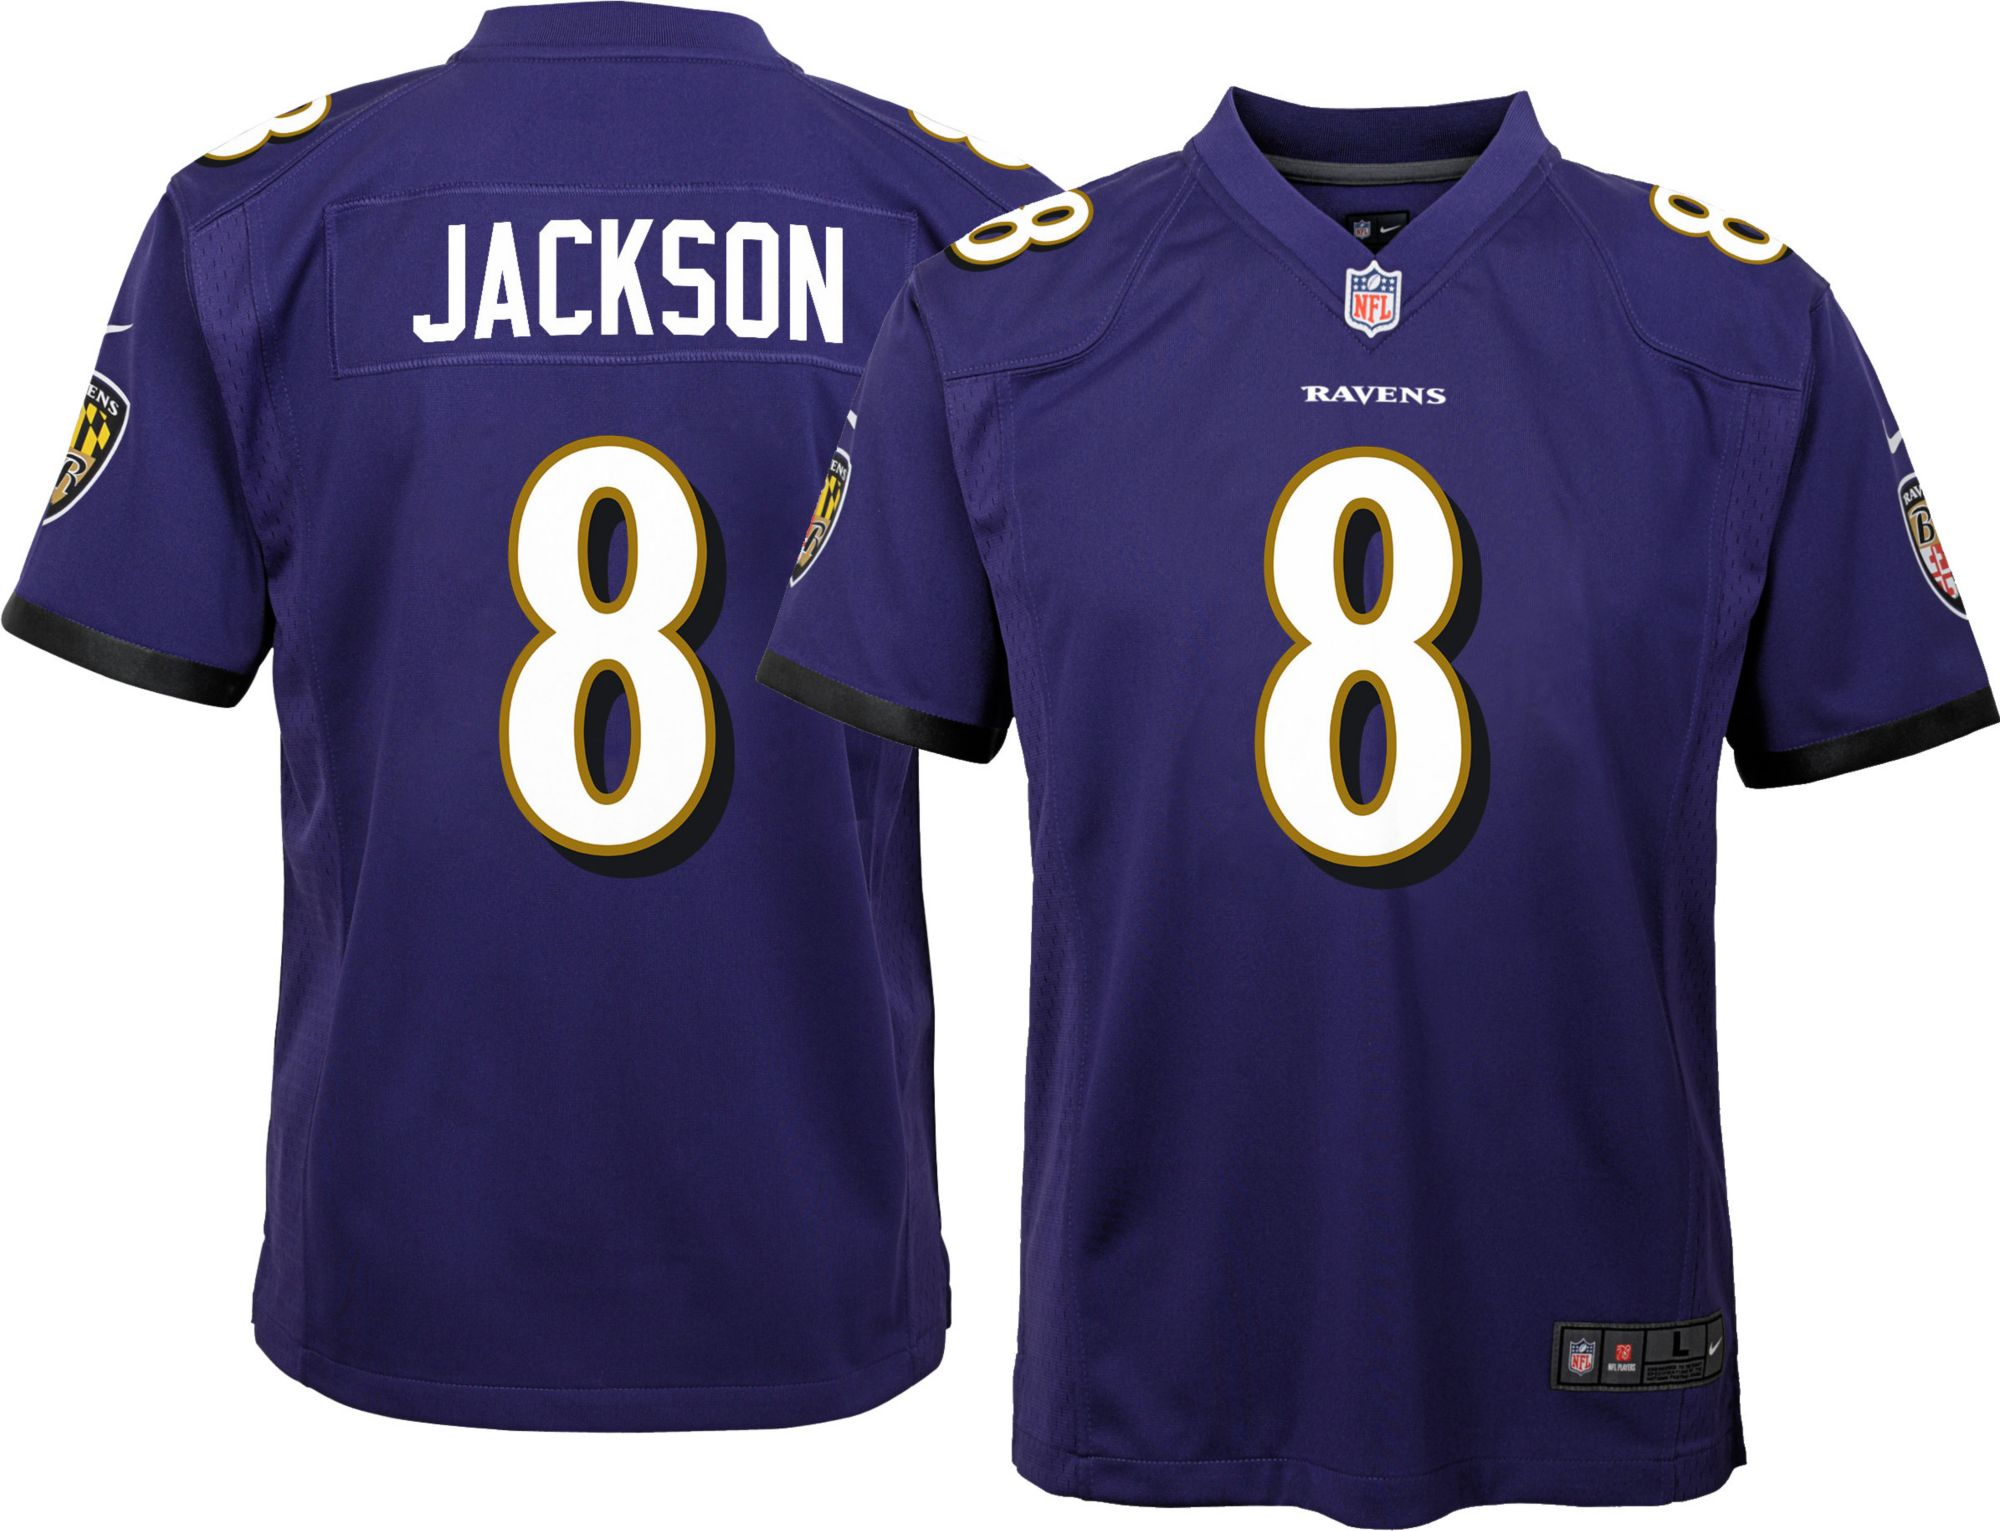 lamar jackson jersey youth